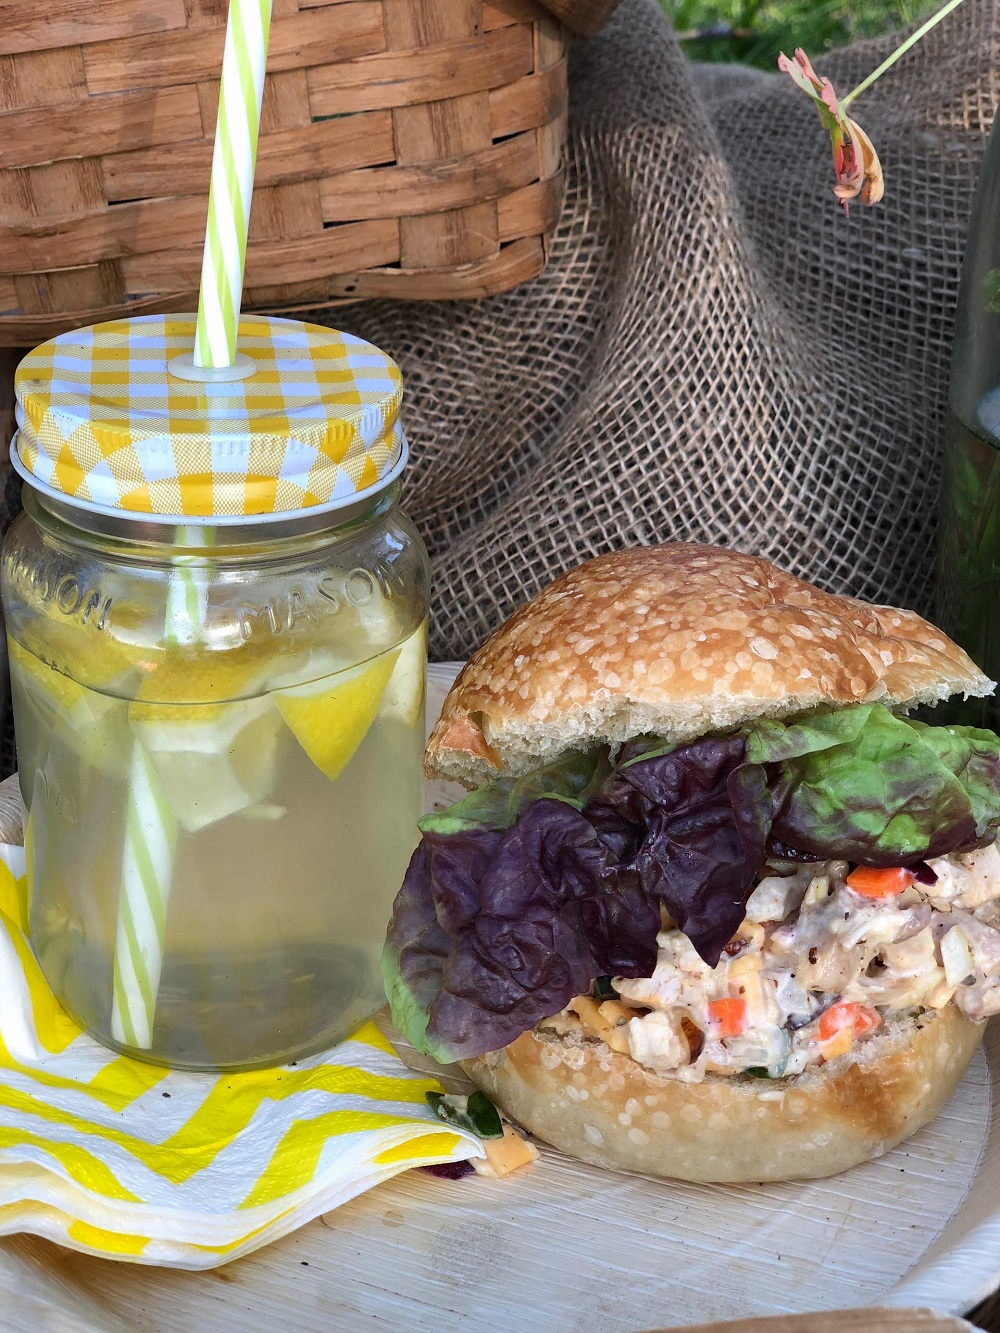 Chicken Salad with Lemonade